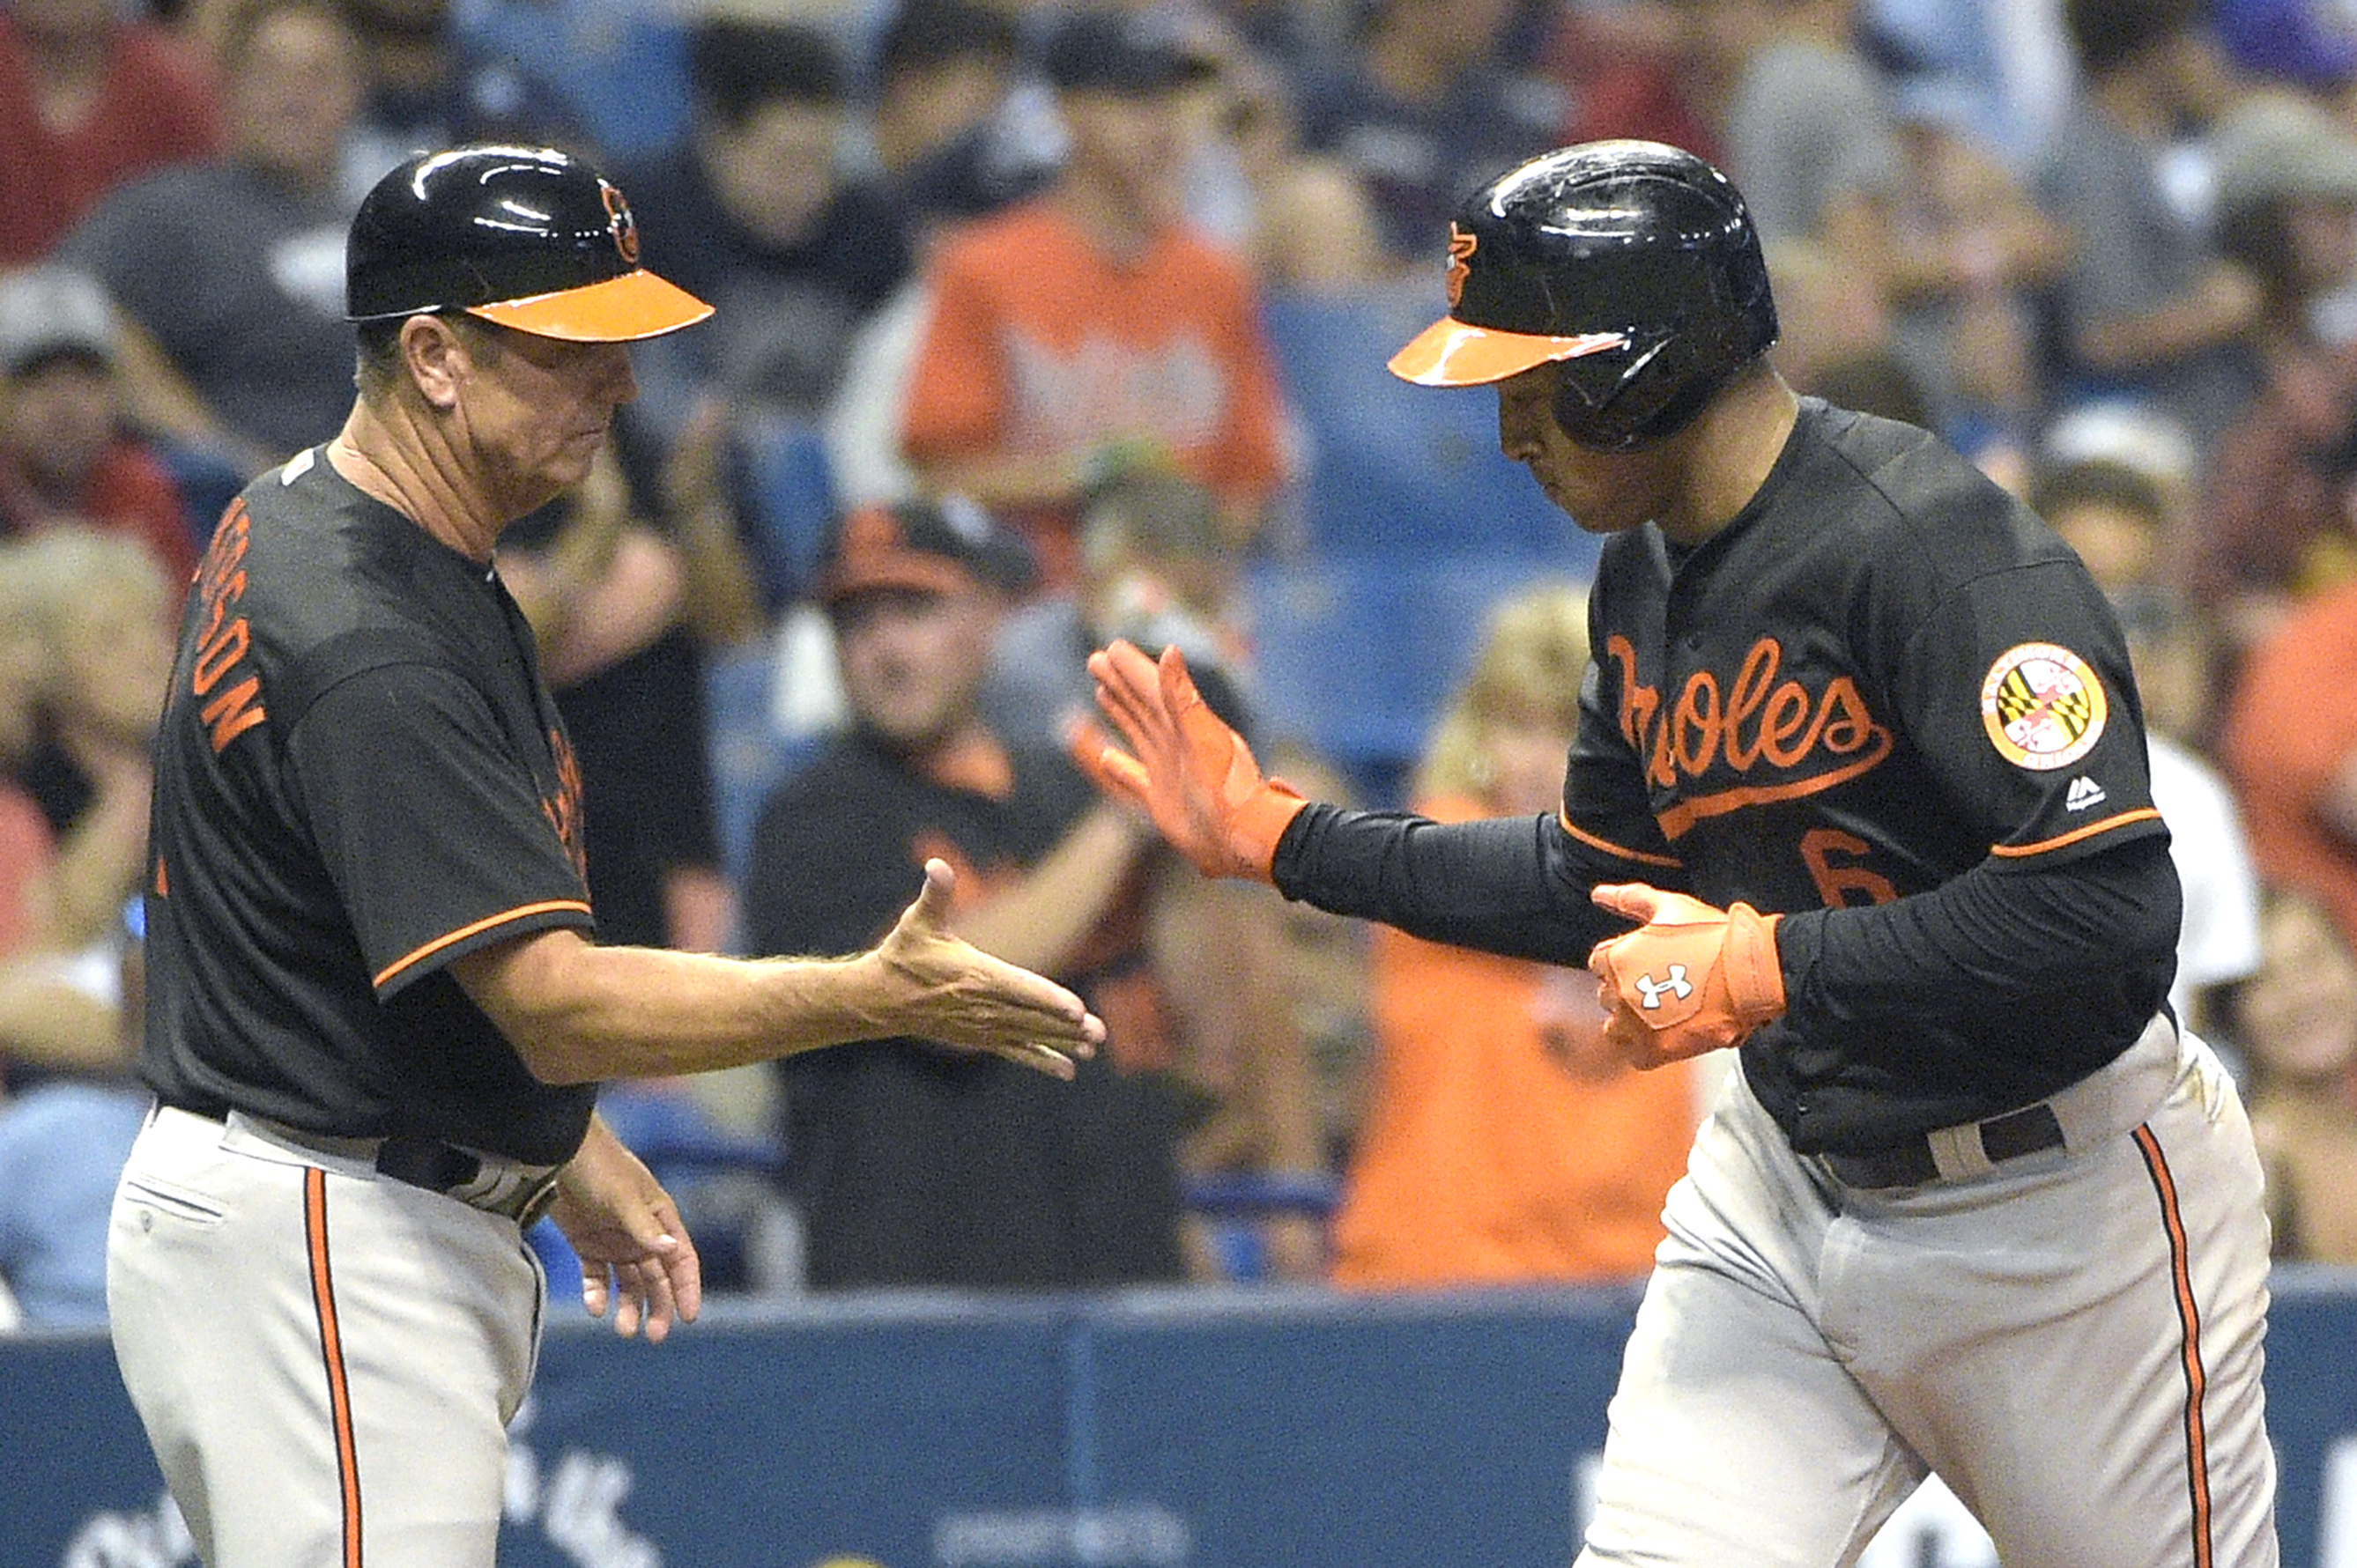 Baltimore Orioles' Jonathan Schoop (6) is congratulated by third base coach Bobby Dickerson while rounding the bag after hitting a solo home run during the eighth inning of a baseball game against the Tampa Bay Rays in St. Petersburg, Fla., Friday, July 1